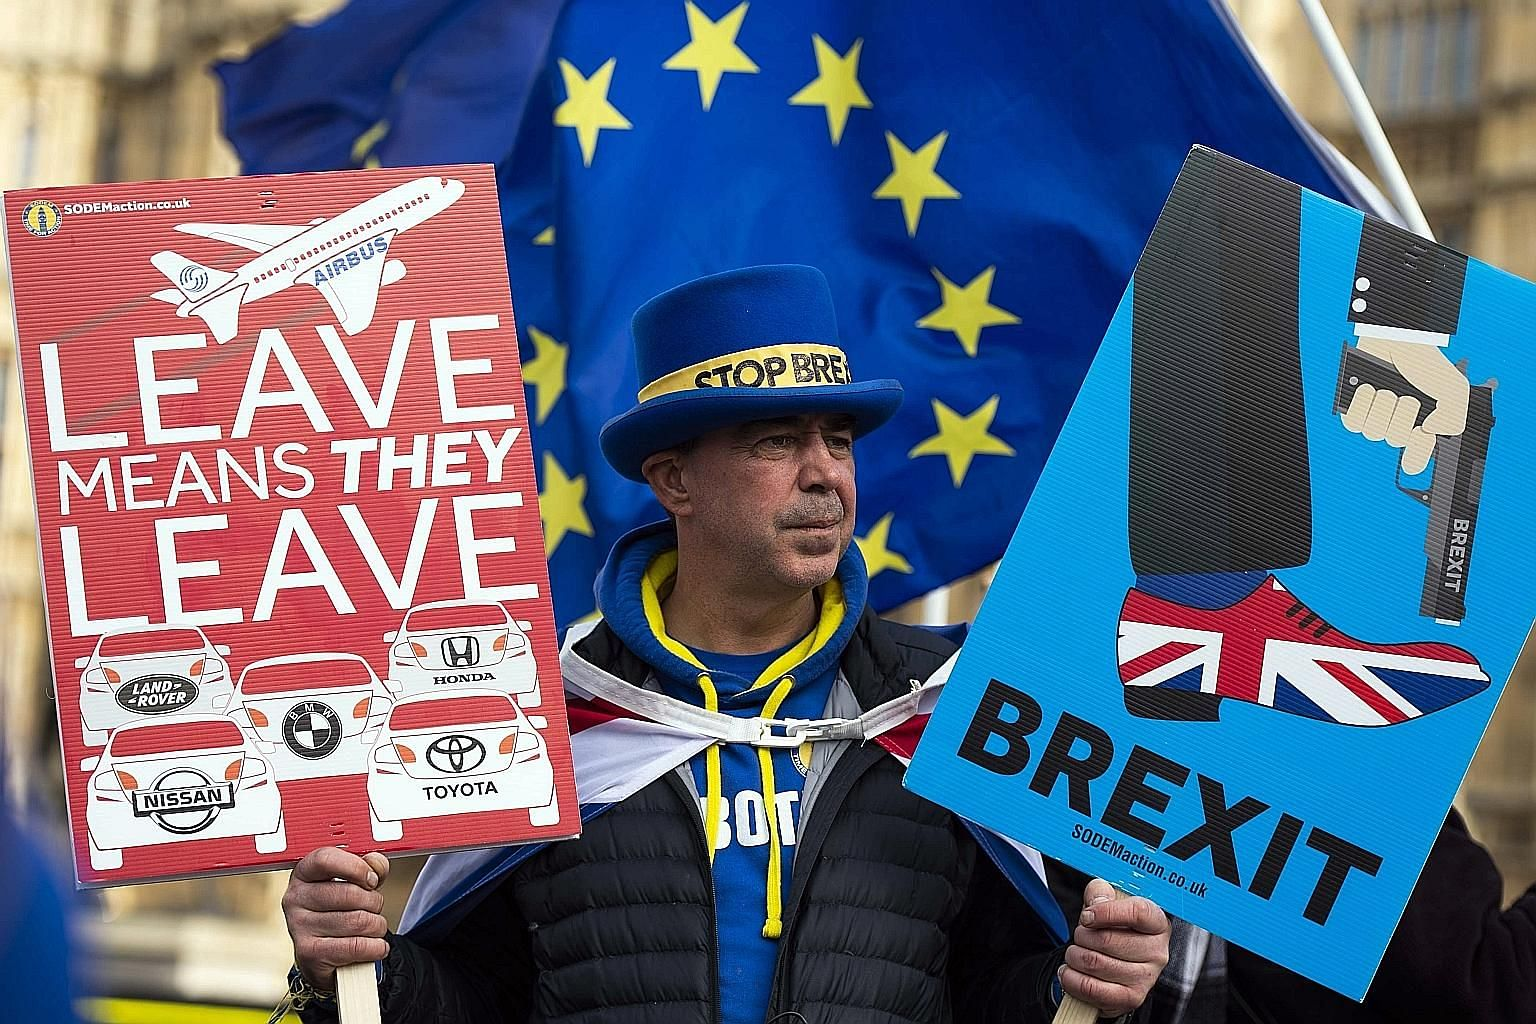 An anti-Brexit protester outside Britain's Houses of Parliament on Tuesday. British Prime Minister Theresa May continues to promise that she will negotiate a better deal for Brexit although none of the EU leaders is prepared to offer any concession.